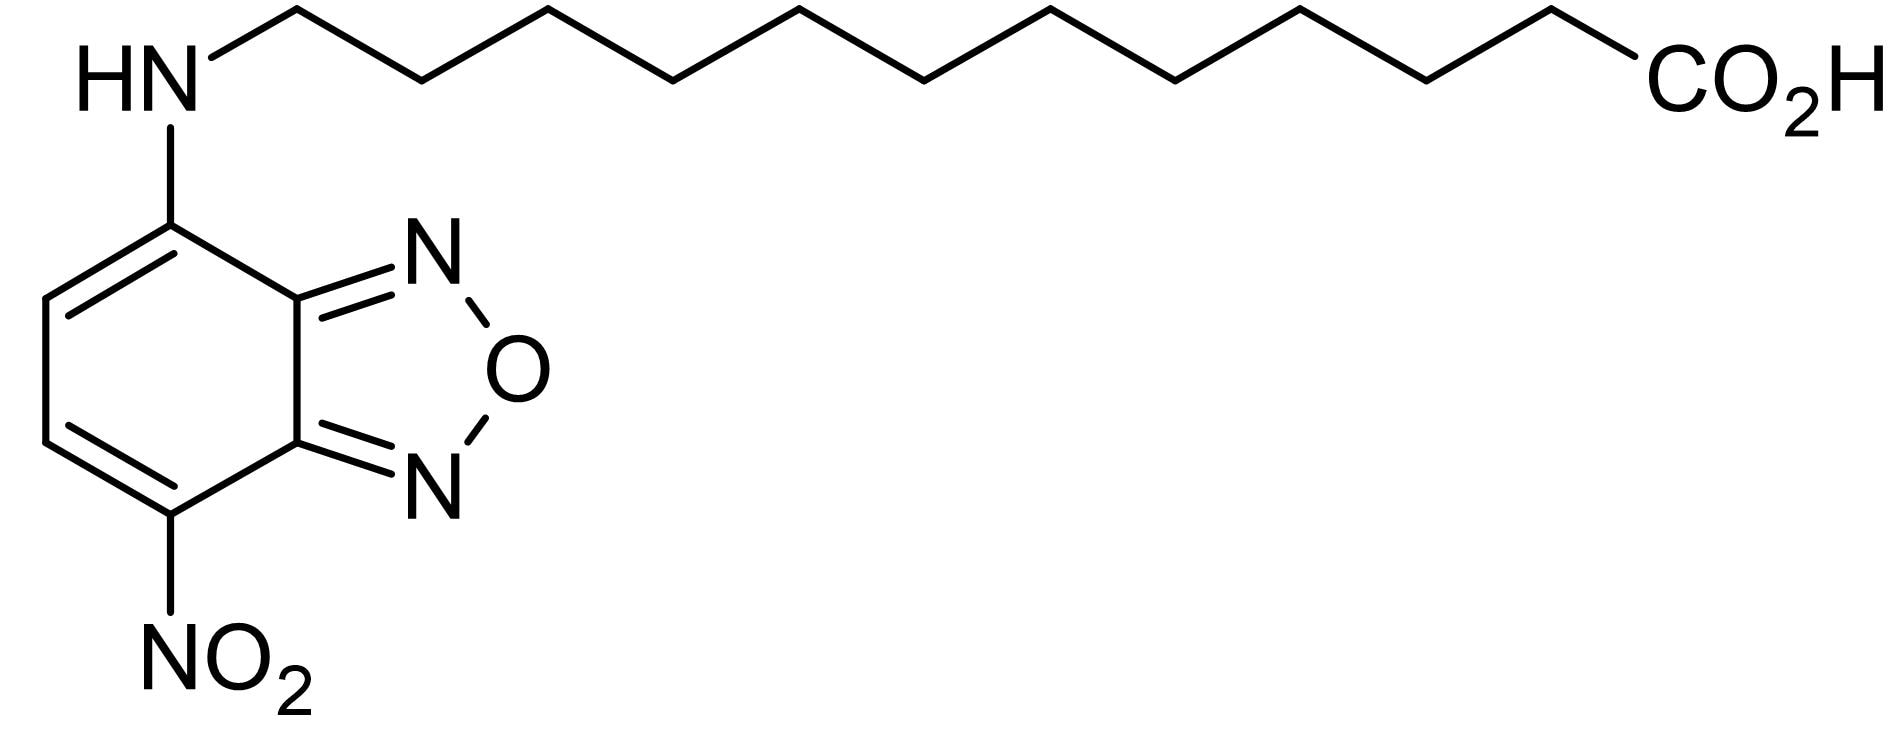 Chemical Structure - NBD-dodecanoic acid, Fatty acid ligand binding site probe (ab145361)